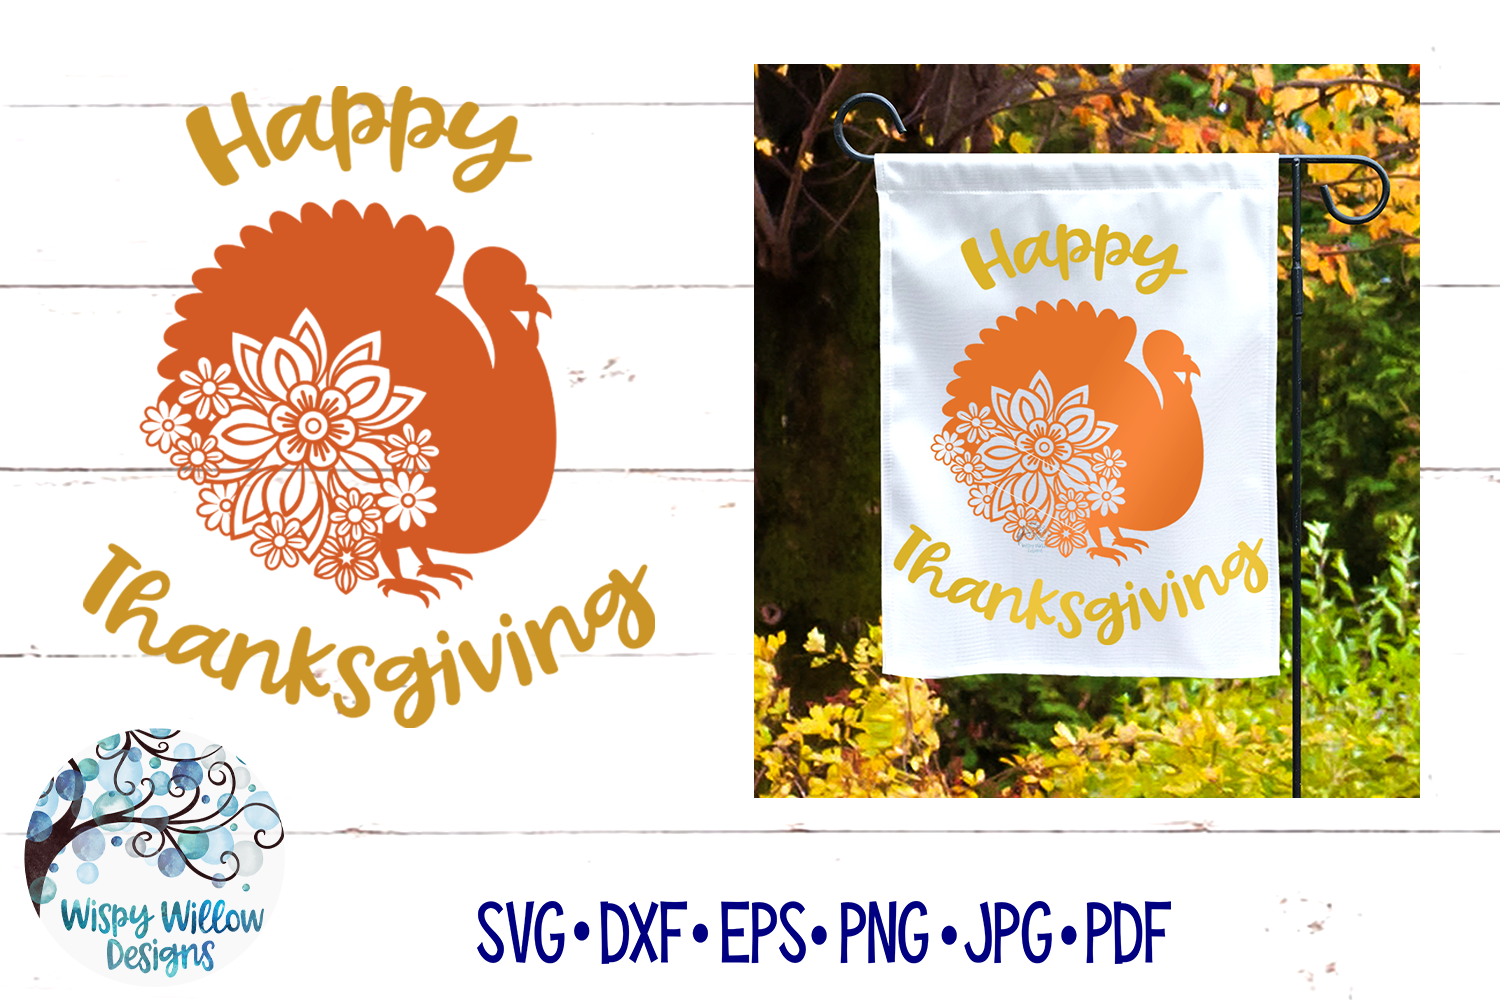 Happy Thanksgiving SVG |Turkey SVG | Fall SVG Cut File example image 1